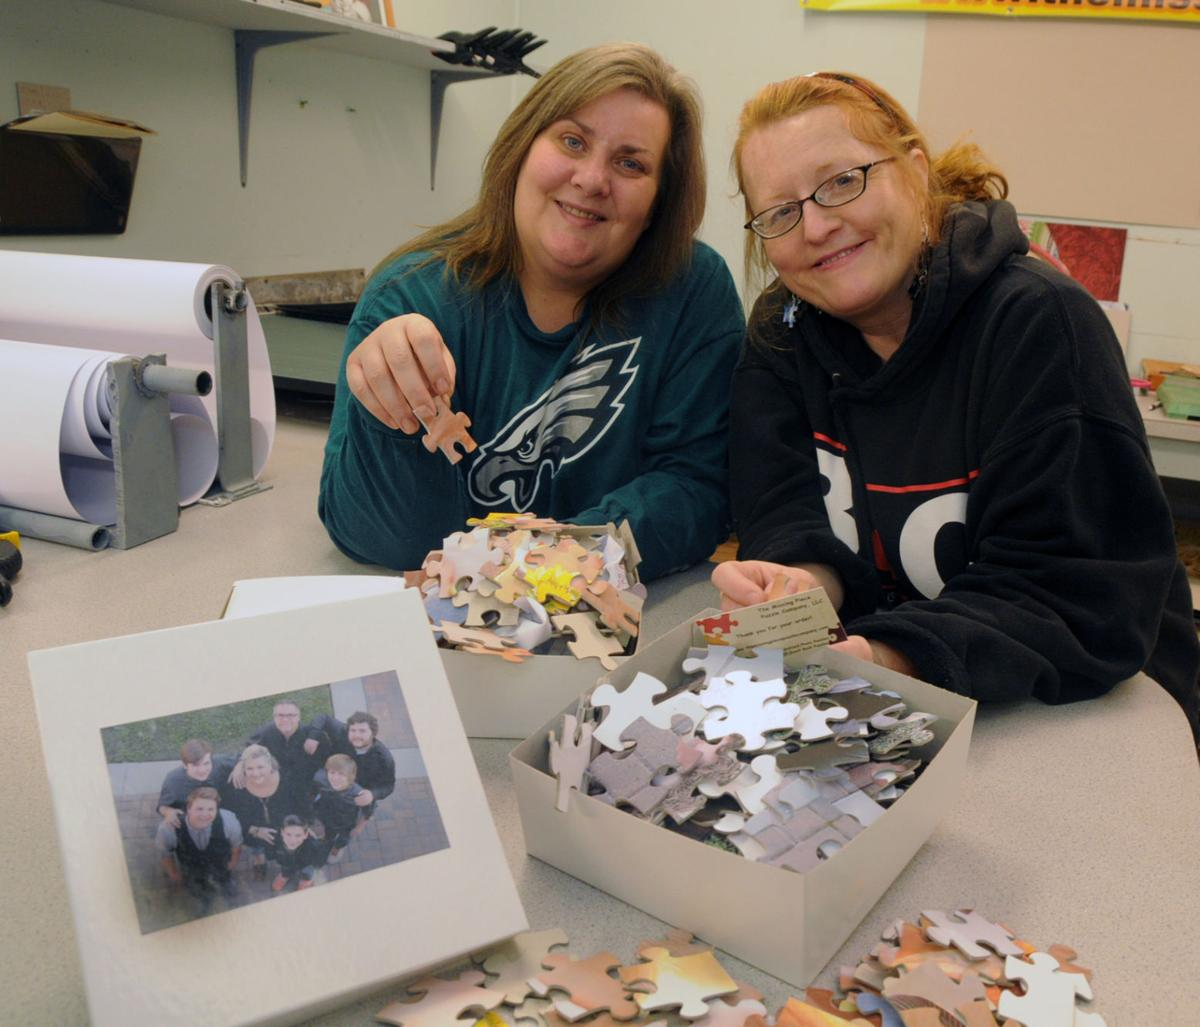 richland company puts personal touch on puzzles money